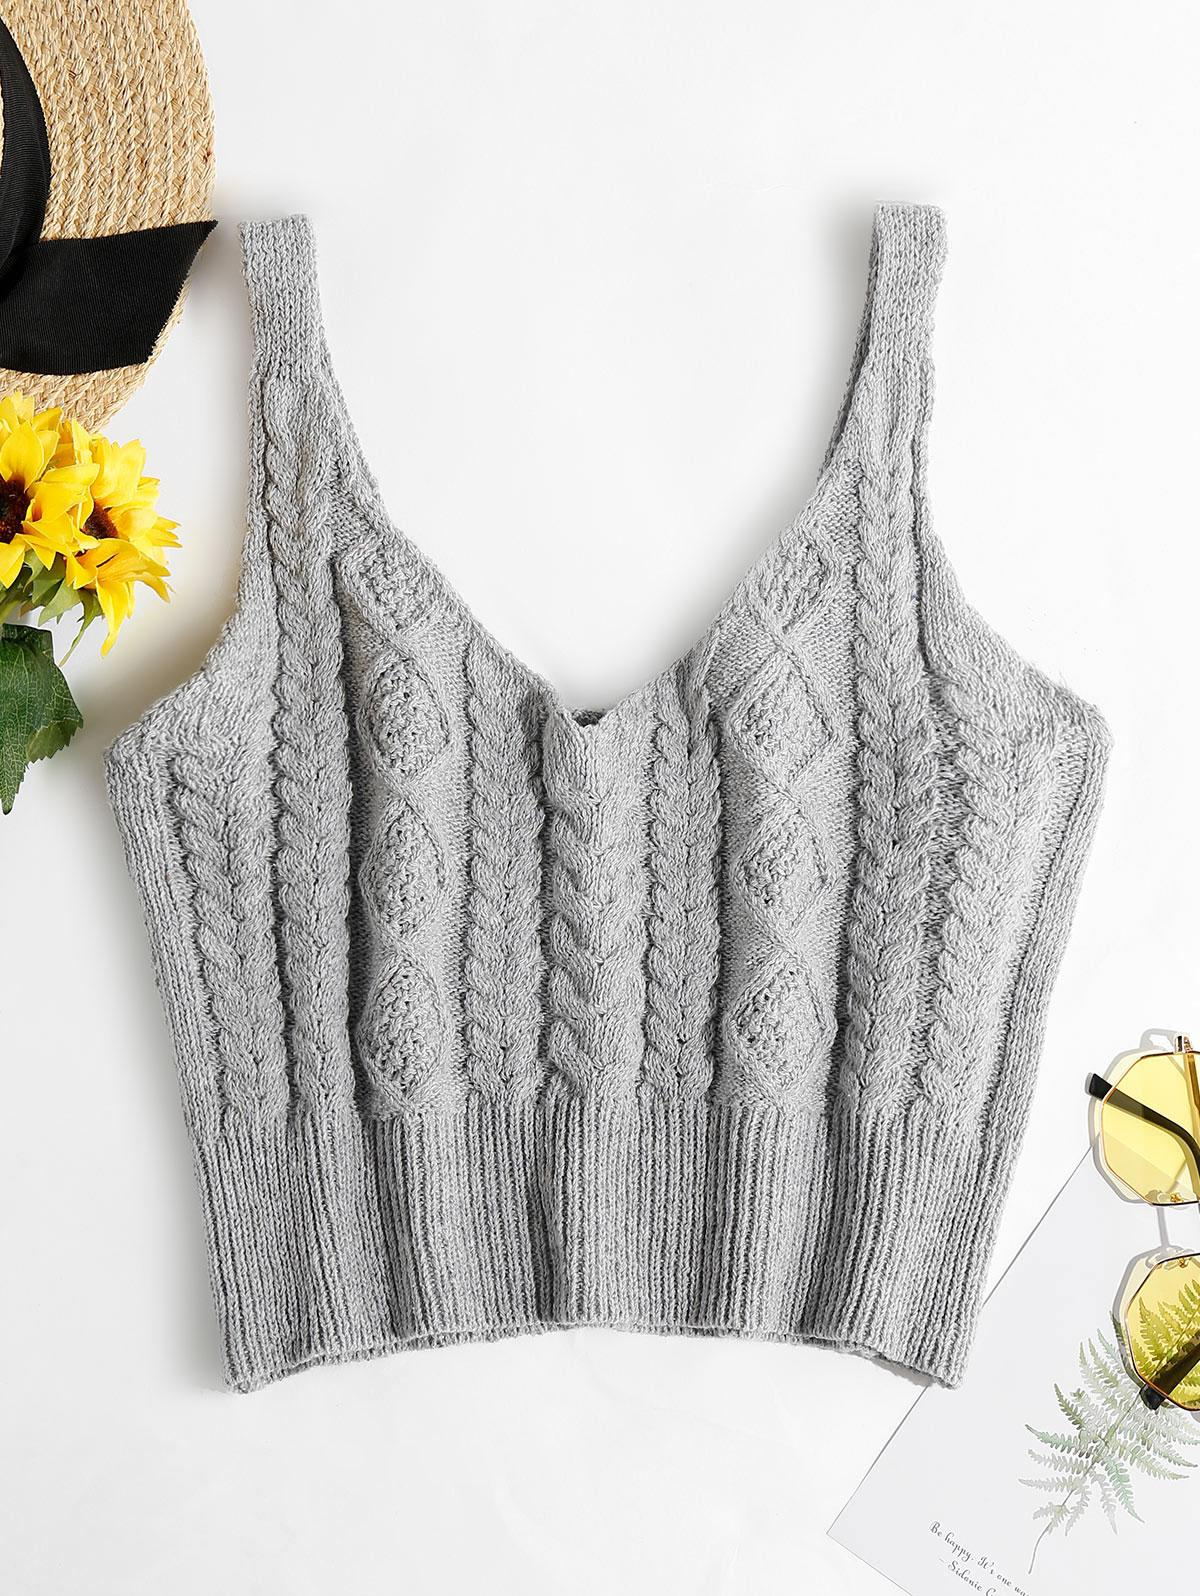 ZAFUL Cable Braided Knit Crop Sweater Tank Top